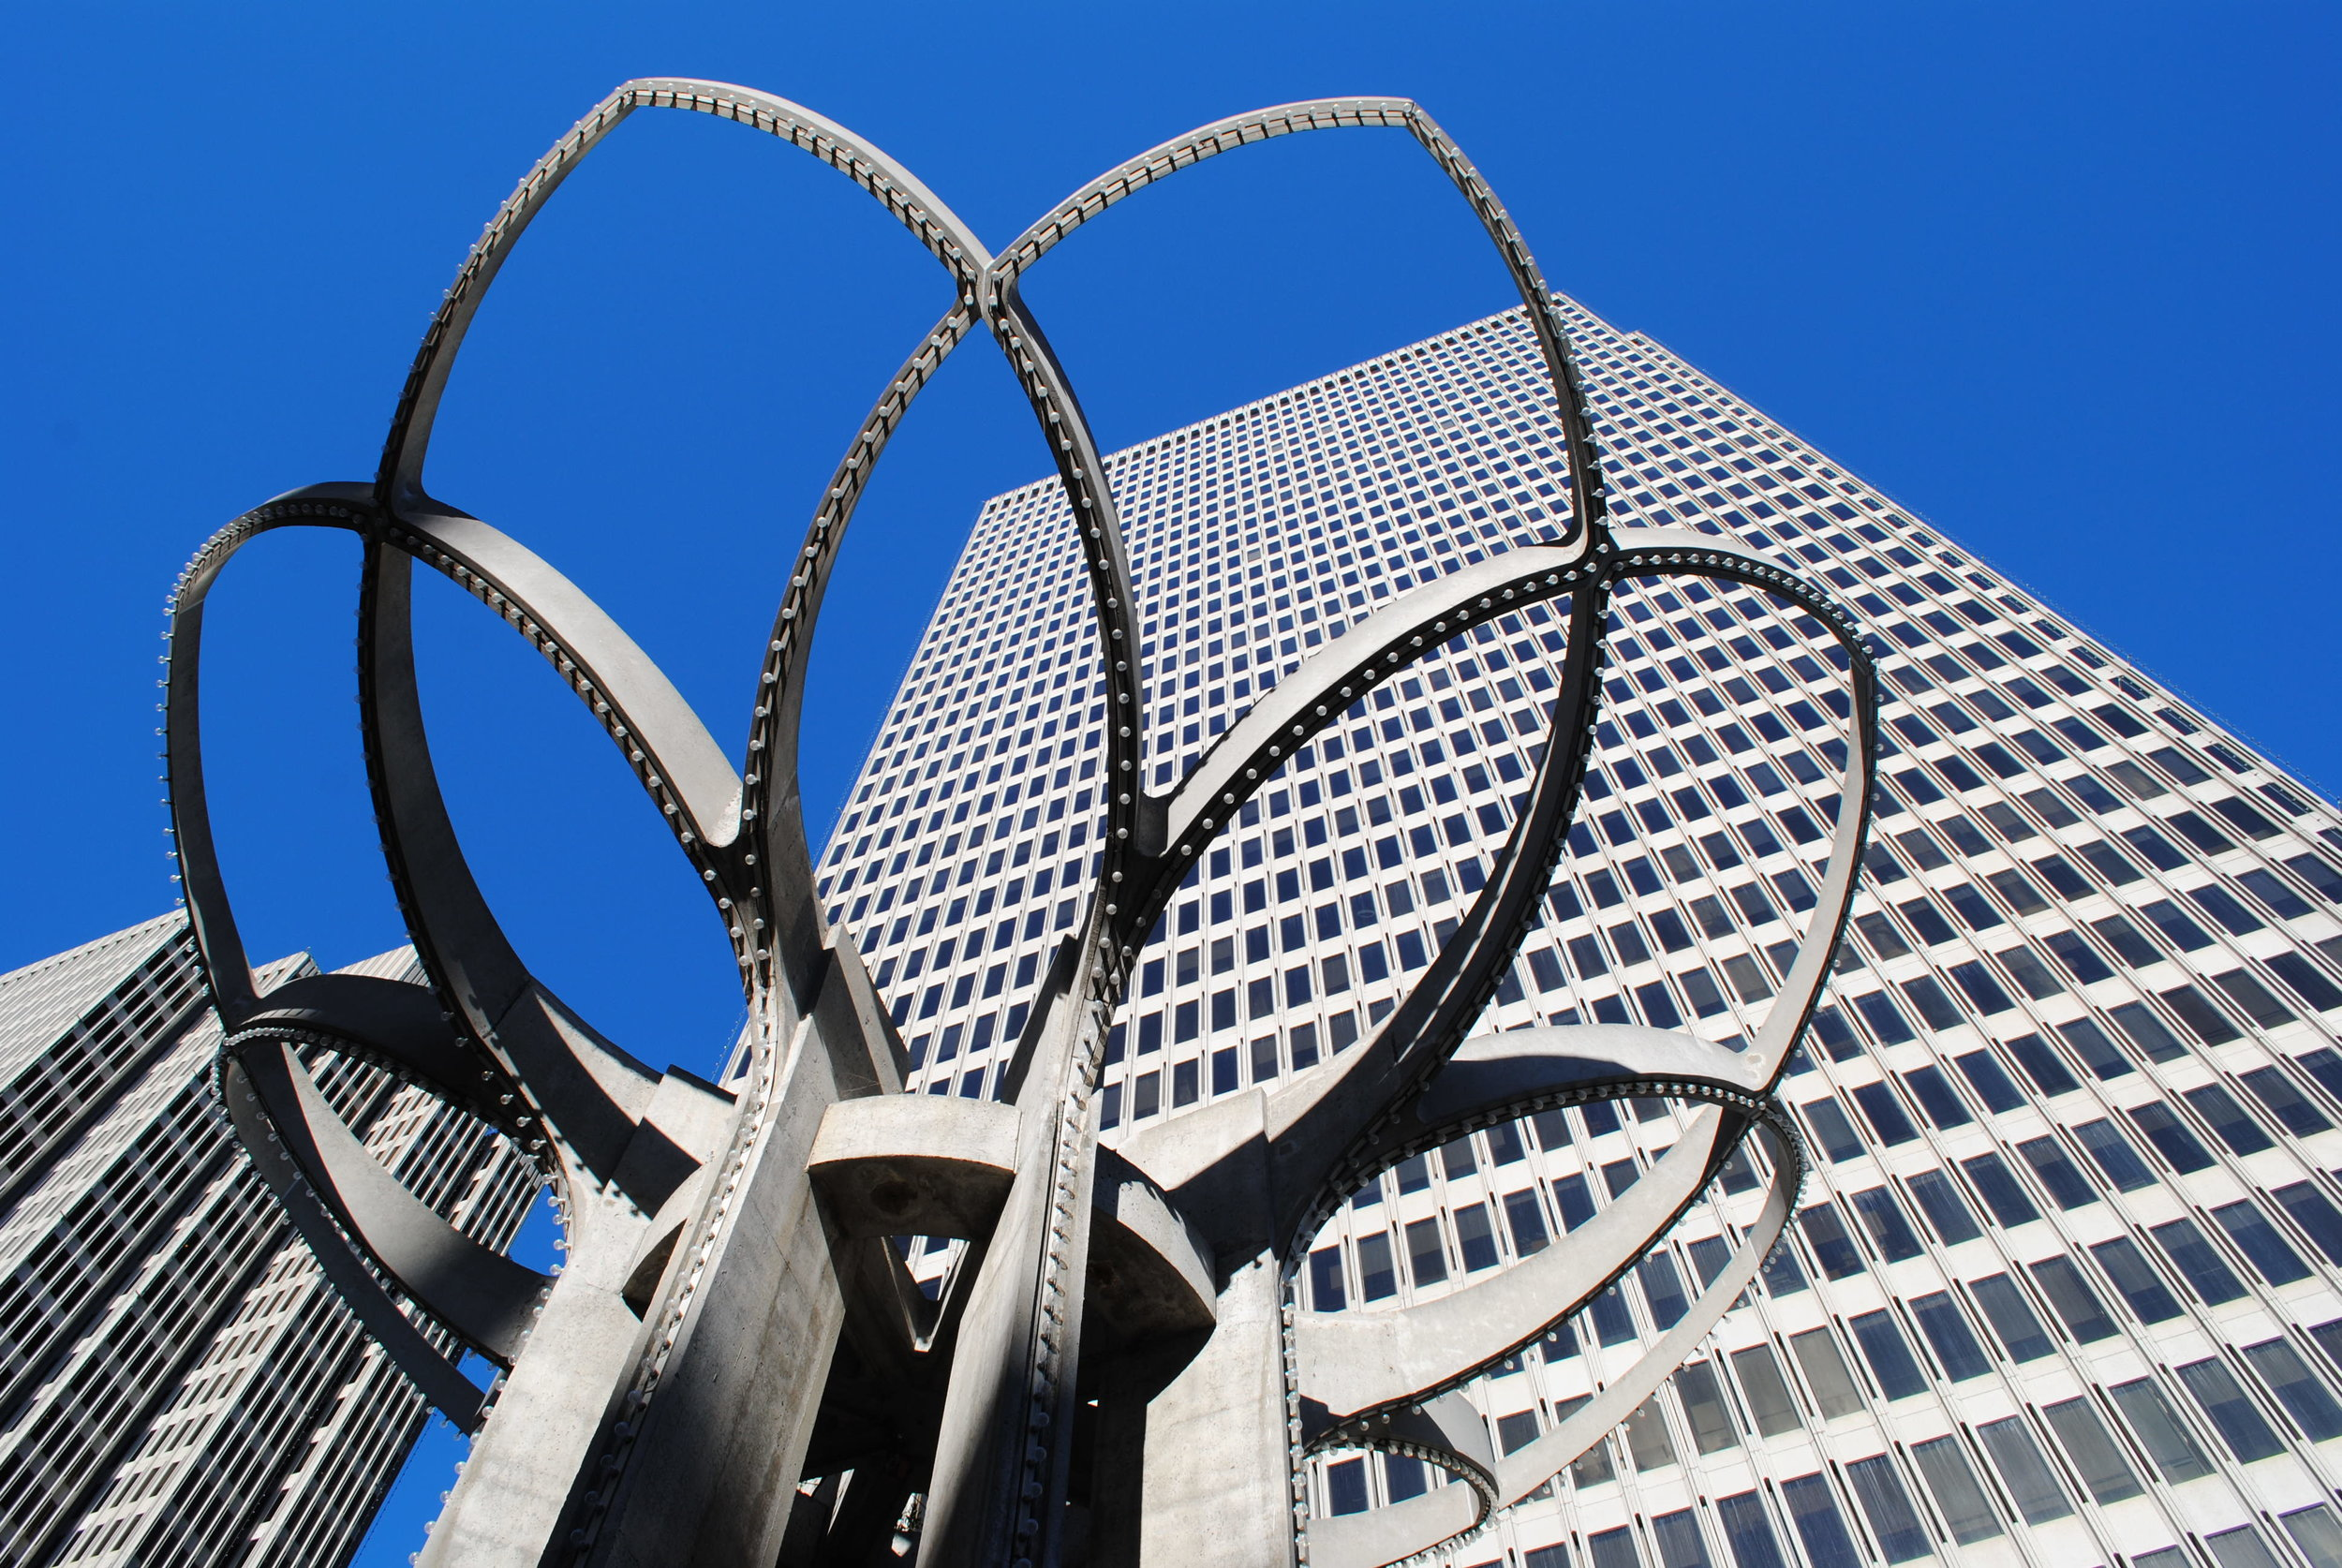 View of Embarcadero Center buildings with John Portman sculpture in the foreground